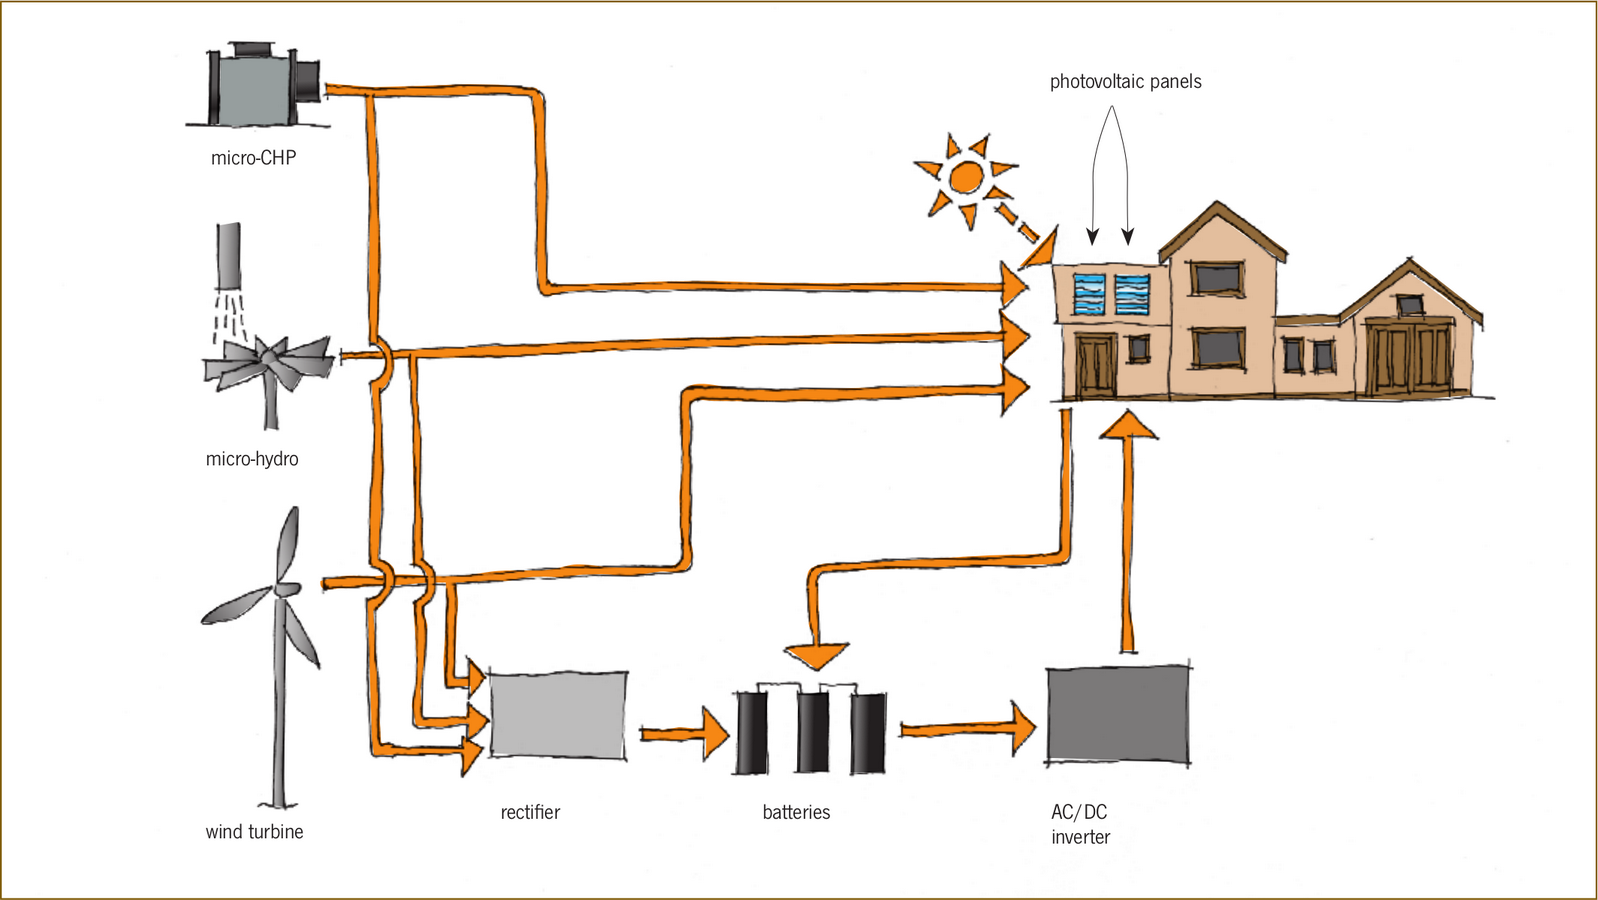 10 Things to remember while designing Energy-efficient structures - Sheet4